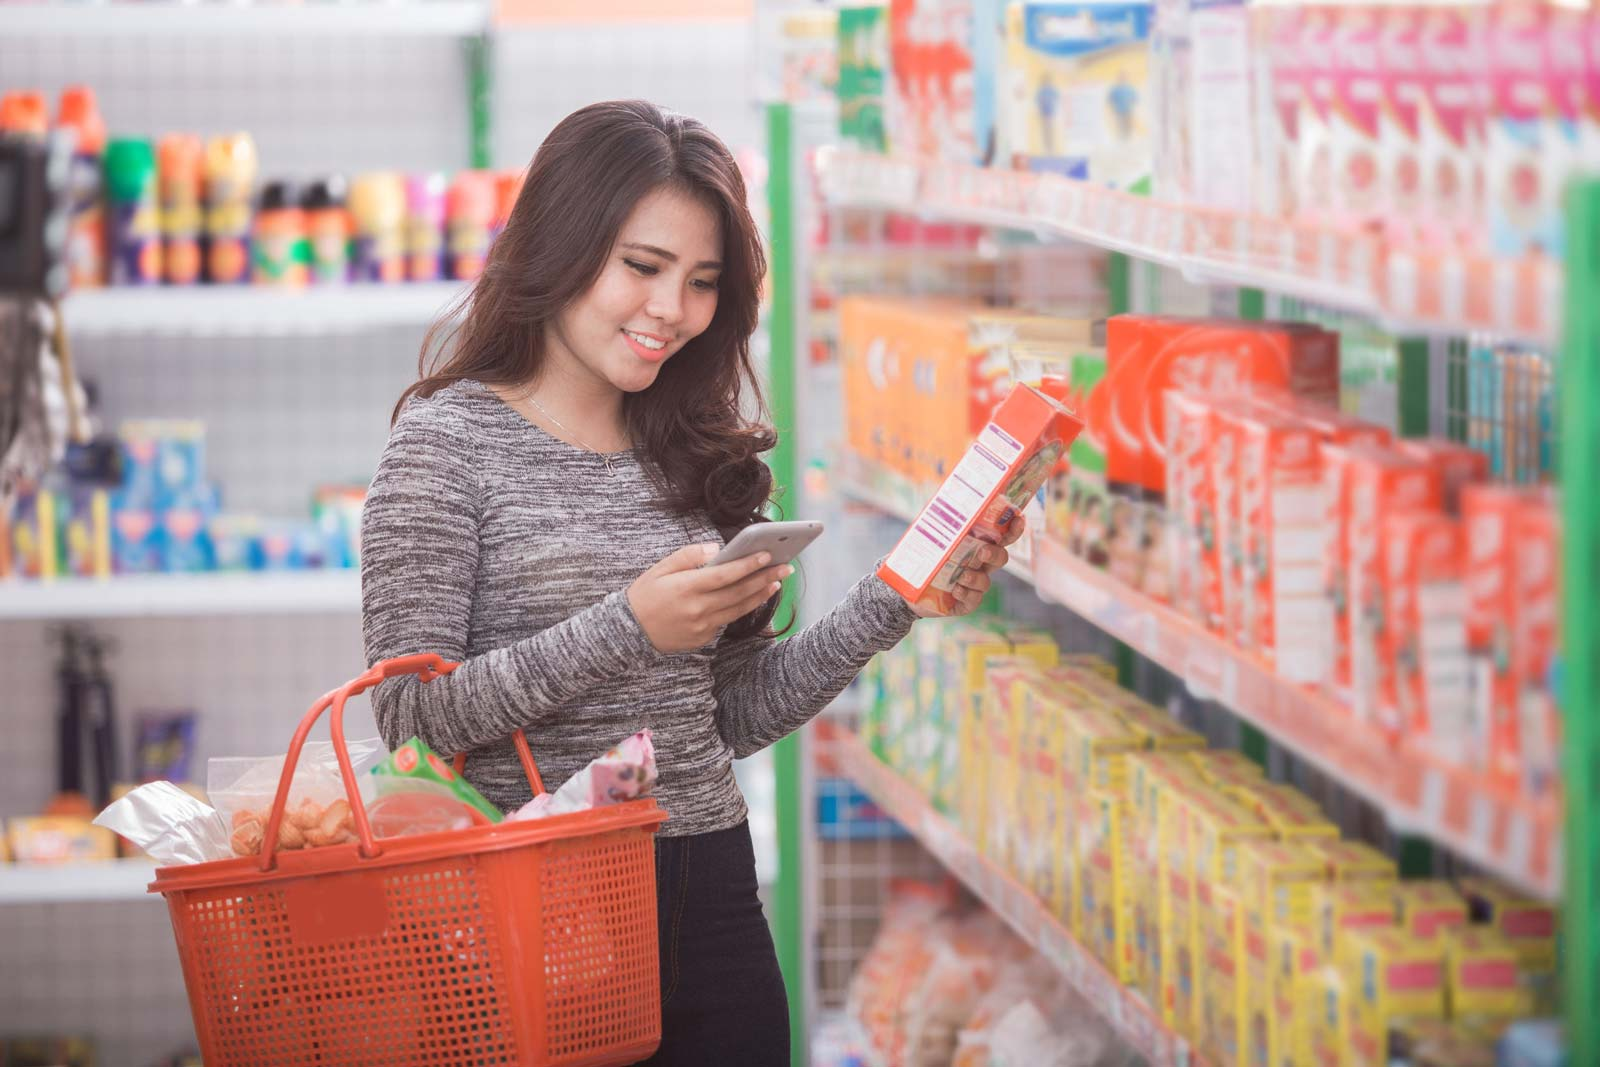 Image of a woman reading a nutrition label in a grocery store